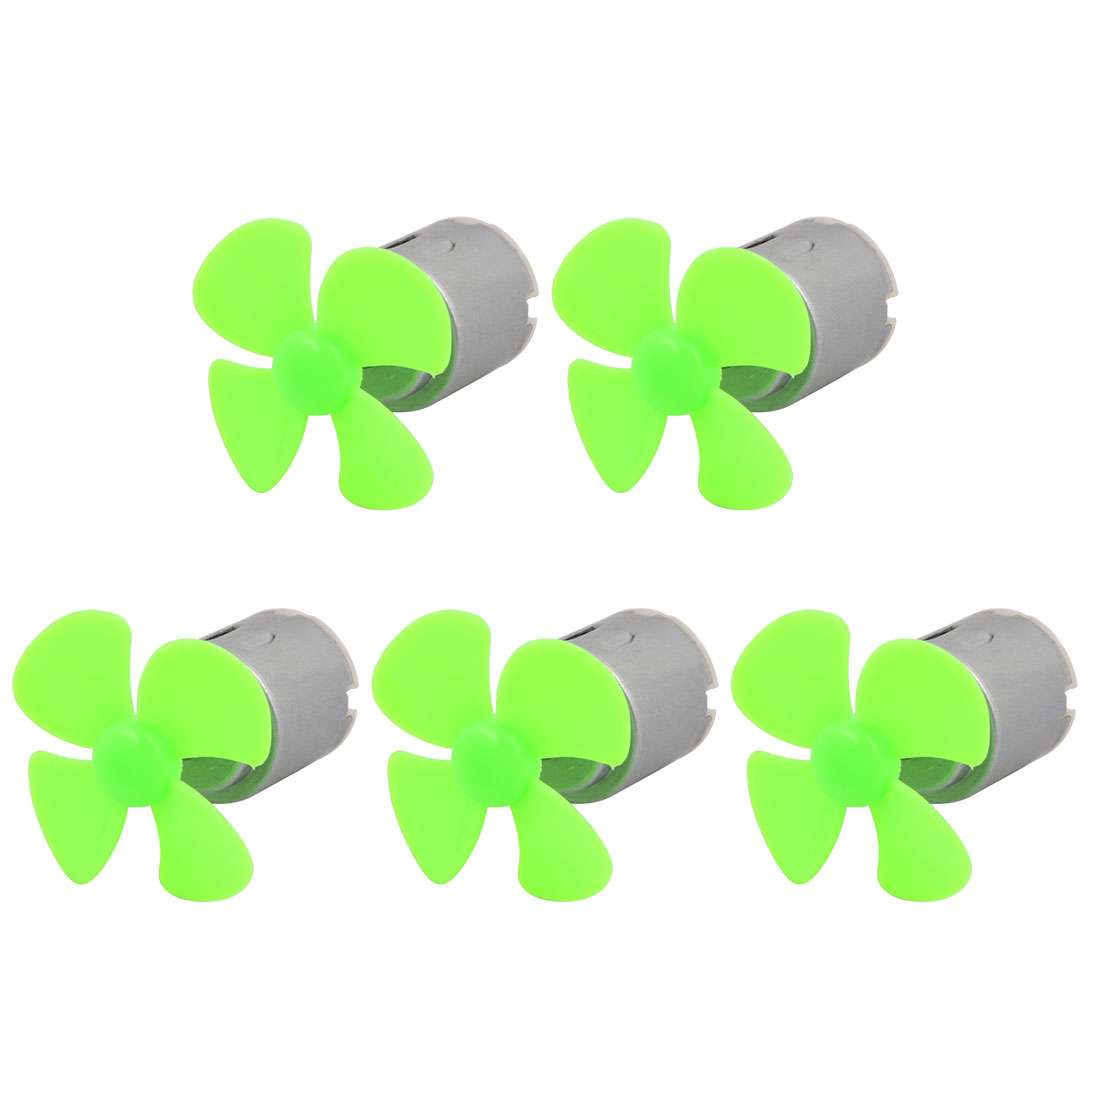 5pcs DC 3V 0.13A 6600RPM Green Strong Force Motor 4 Vanes 40mm Dia Propeller for RC Aircraft